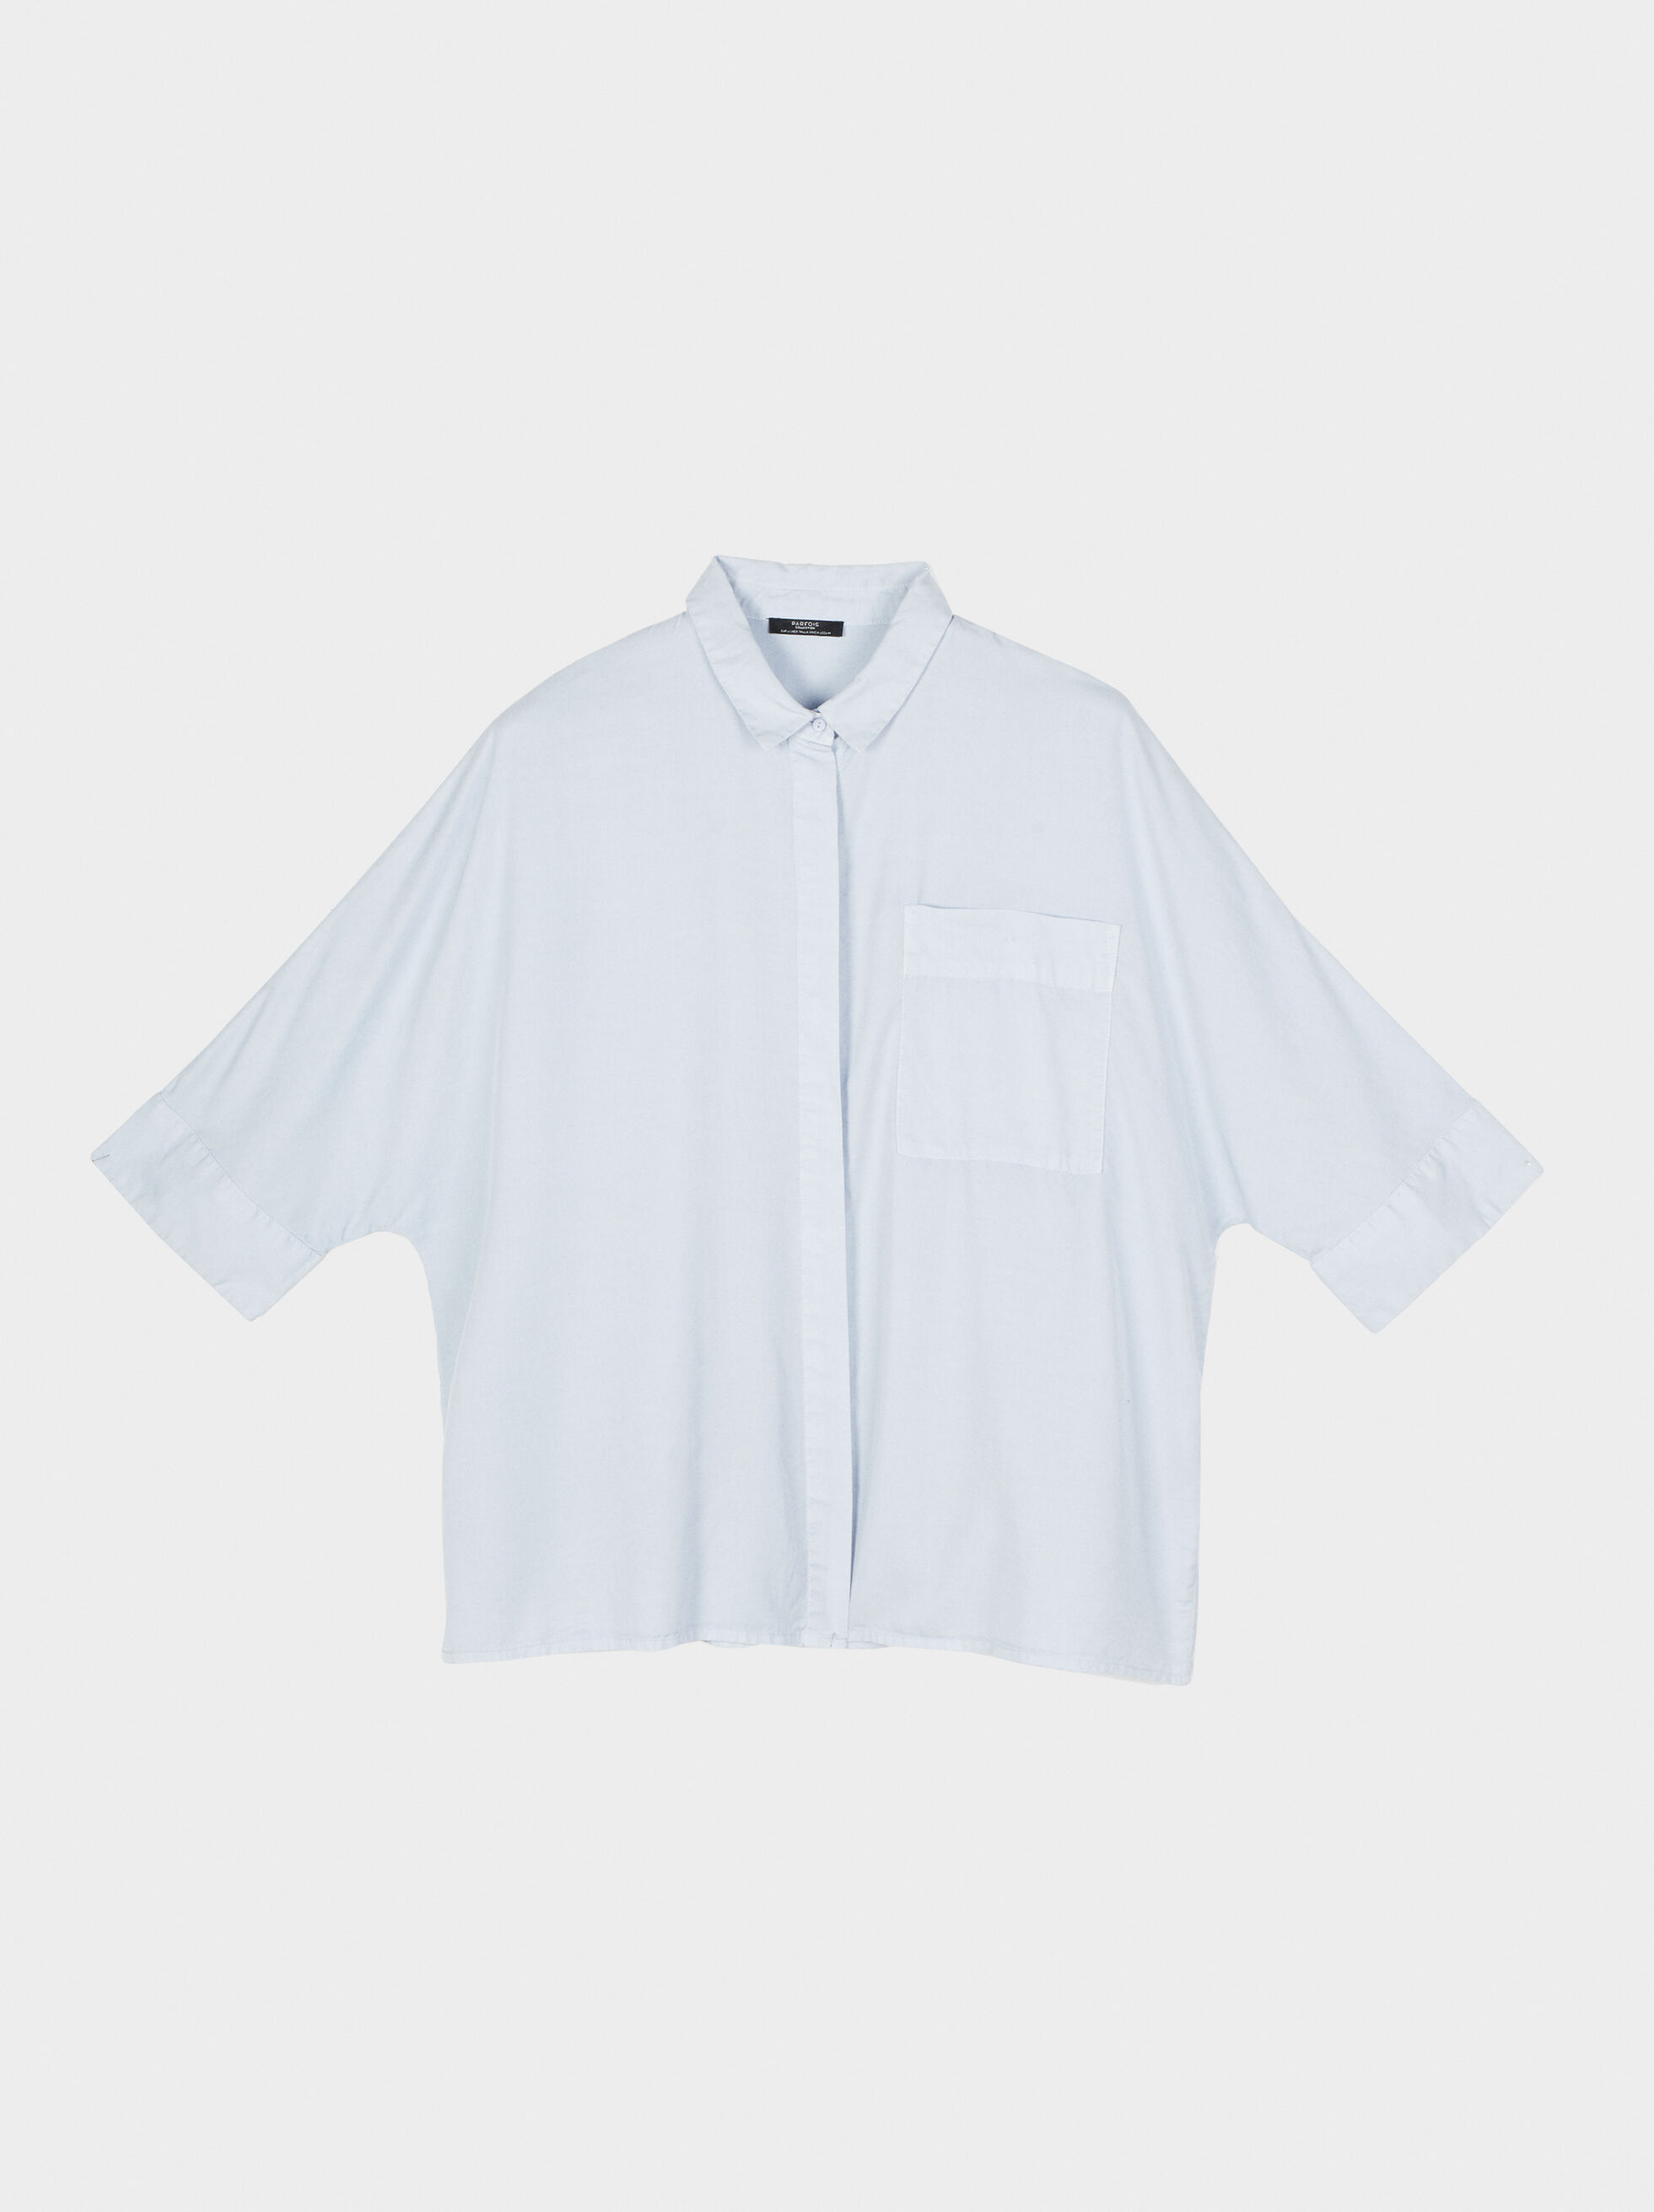 Shirt With Pocket, Blue, hi-res